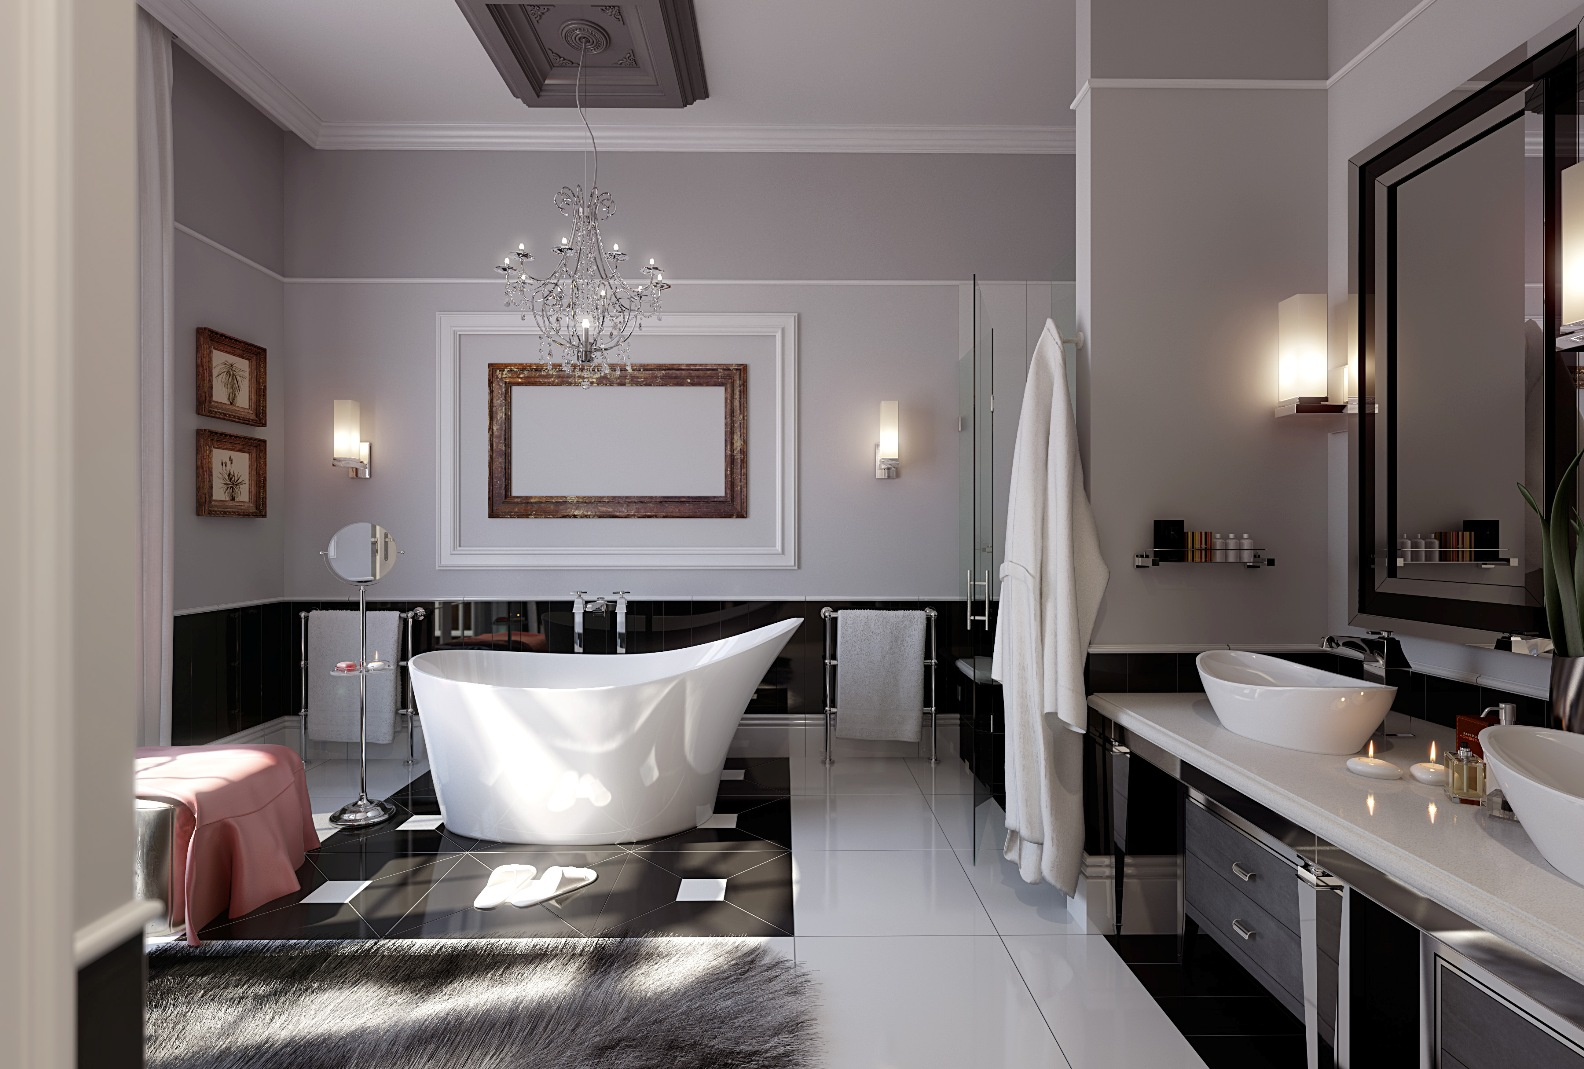 retro-ultramodern-bathroom-white-ceramic-bathtub-inspiration